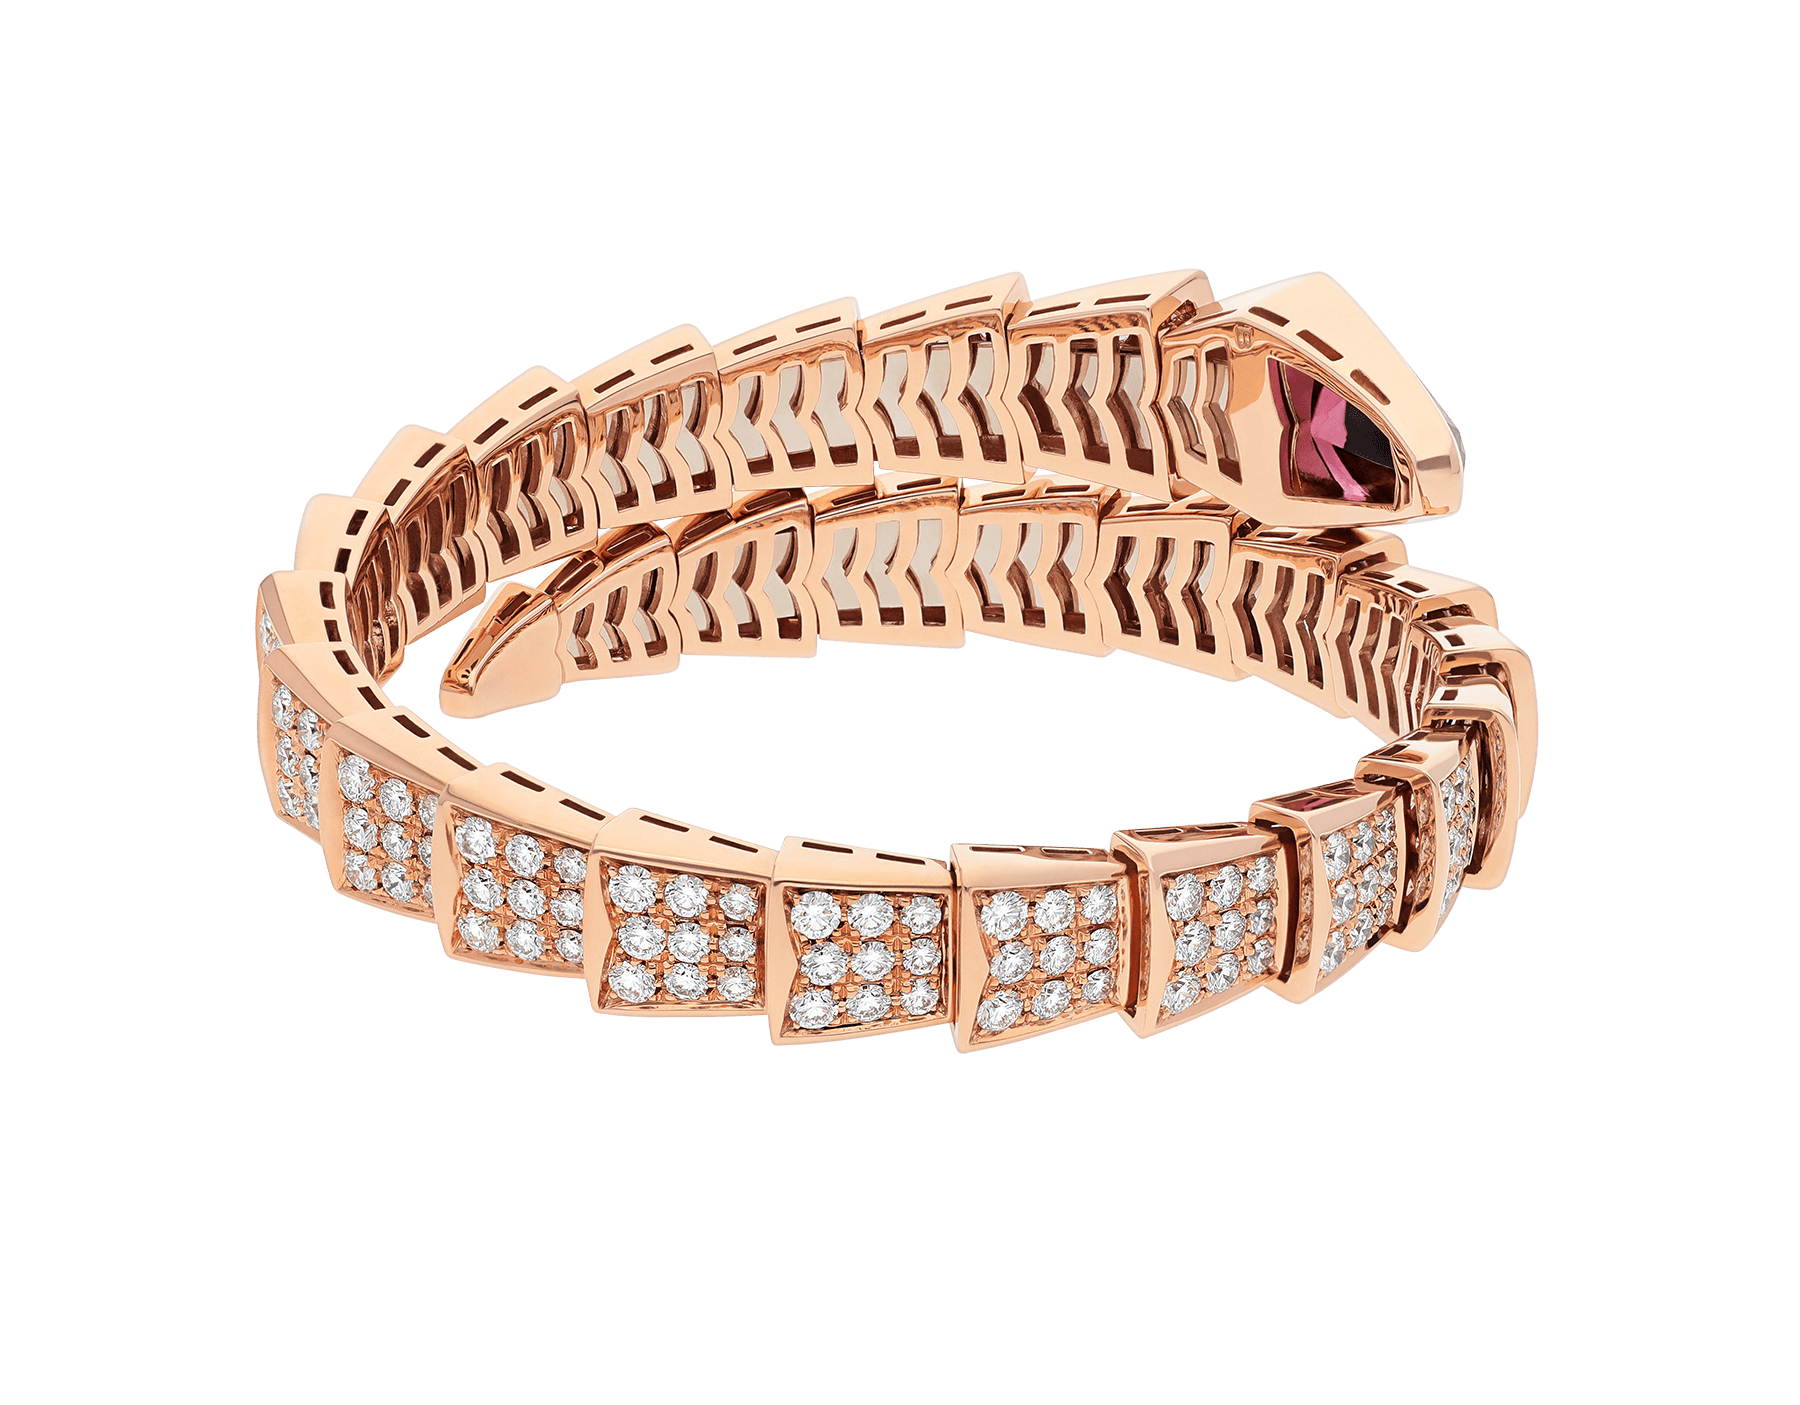 Serpenti one-coil bracelet in 18 kt rose gold, set with full pavé diamonds and a rubellite on the head. BR856126 image 3